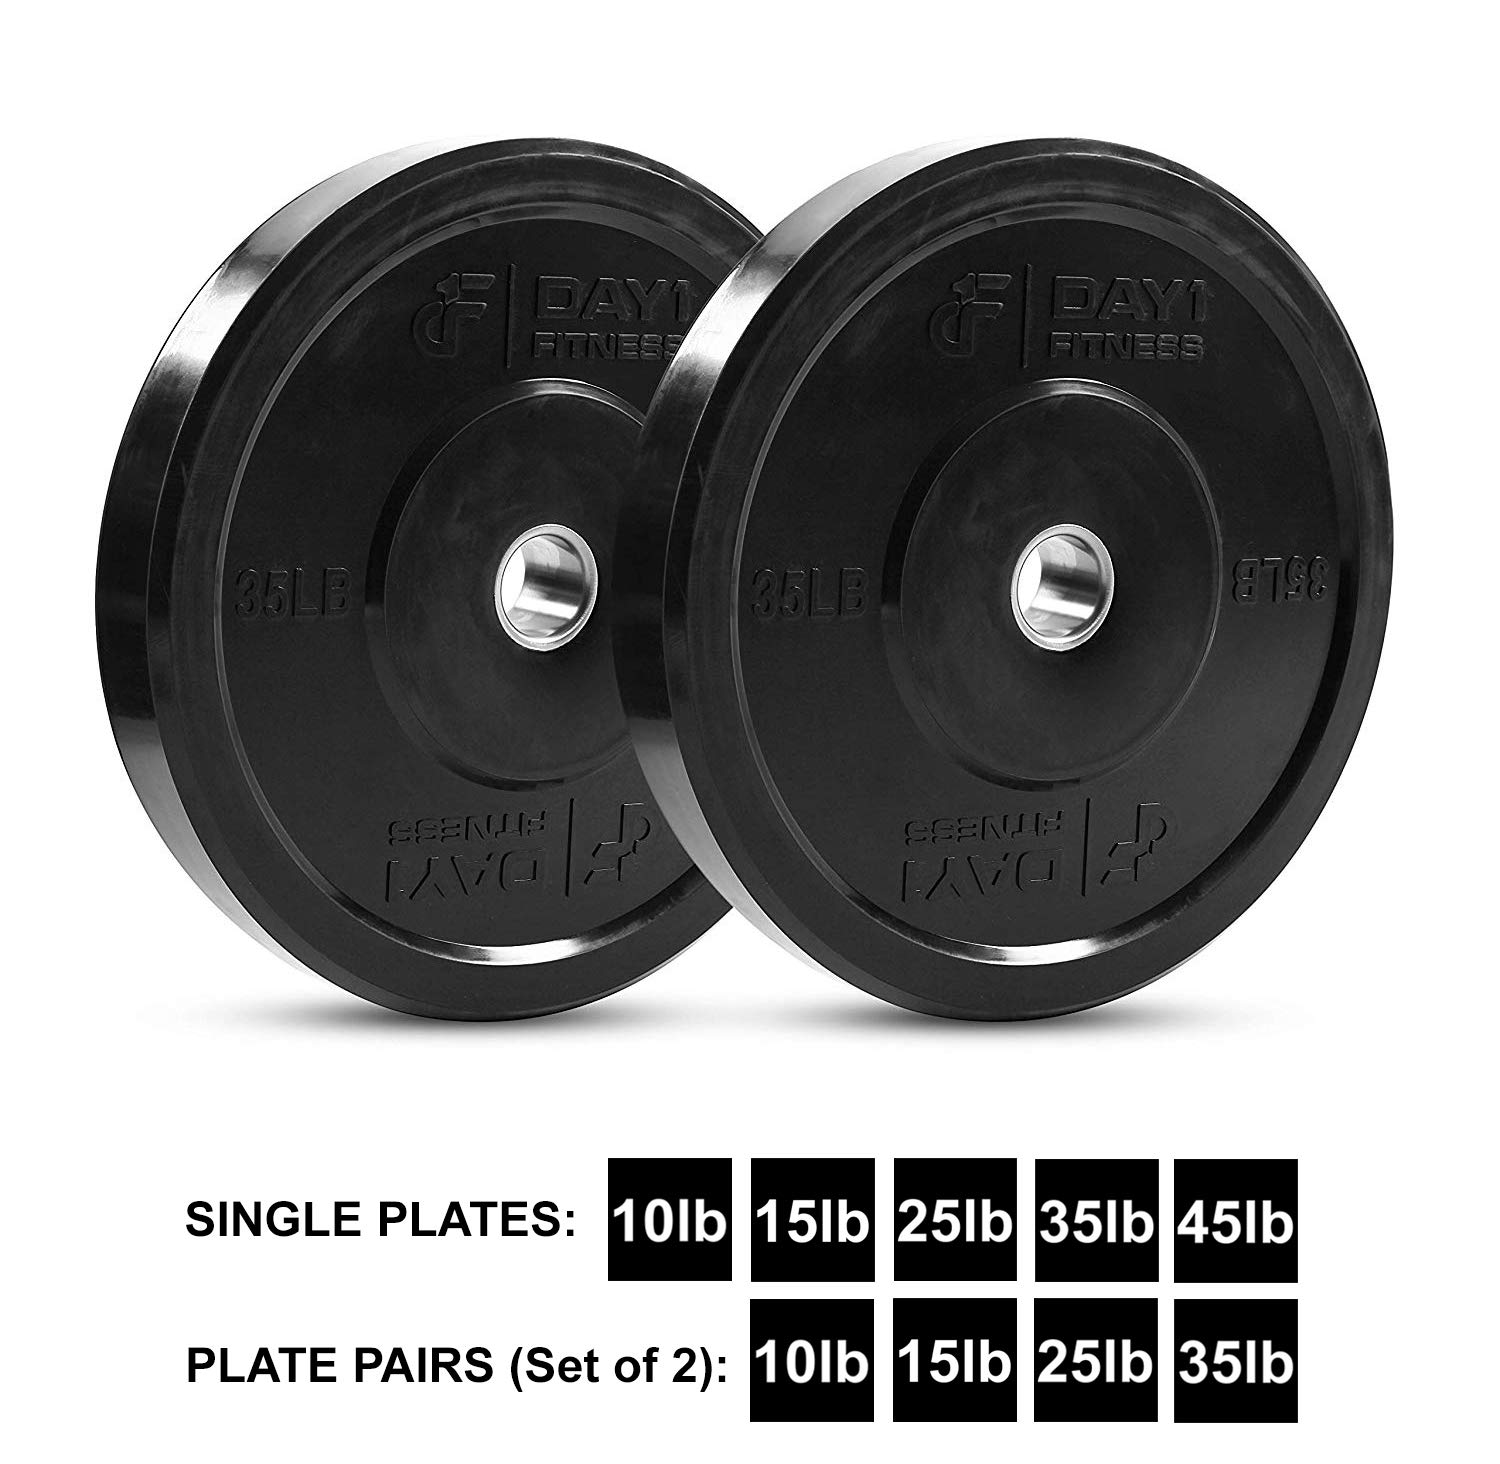 "Day 1 Fitness Olympic Bumper Weighted Plate 2"" for Barbells, Bars – 35 lb Set of 2 Plates - Shock-Absorbing, Minimal Bounce Steel Weights with Bumpers for Lifting, Strength Training, and Working Out by Day 1 Fitness (Image #1)"